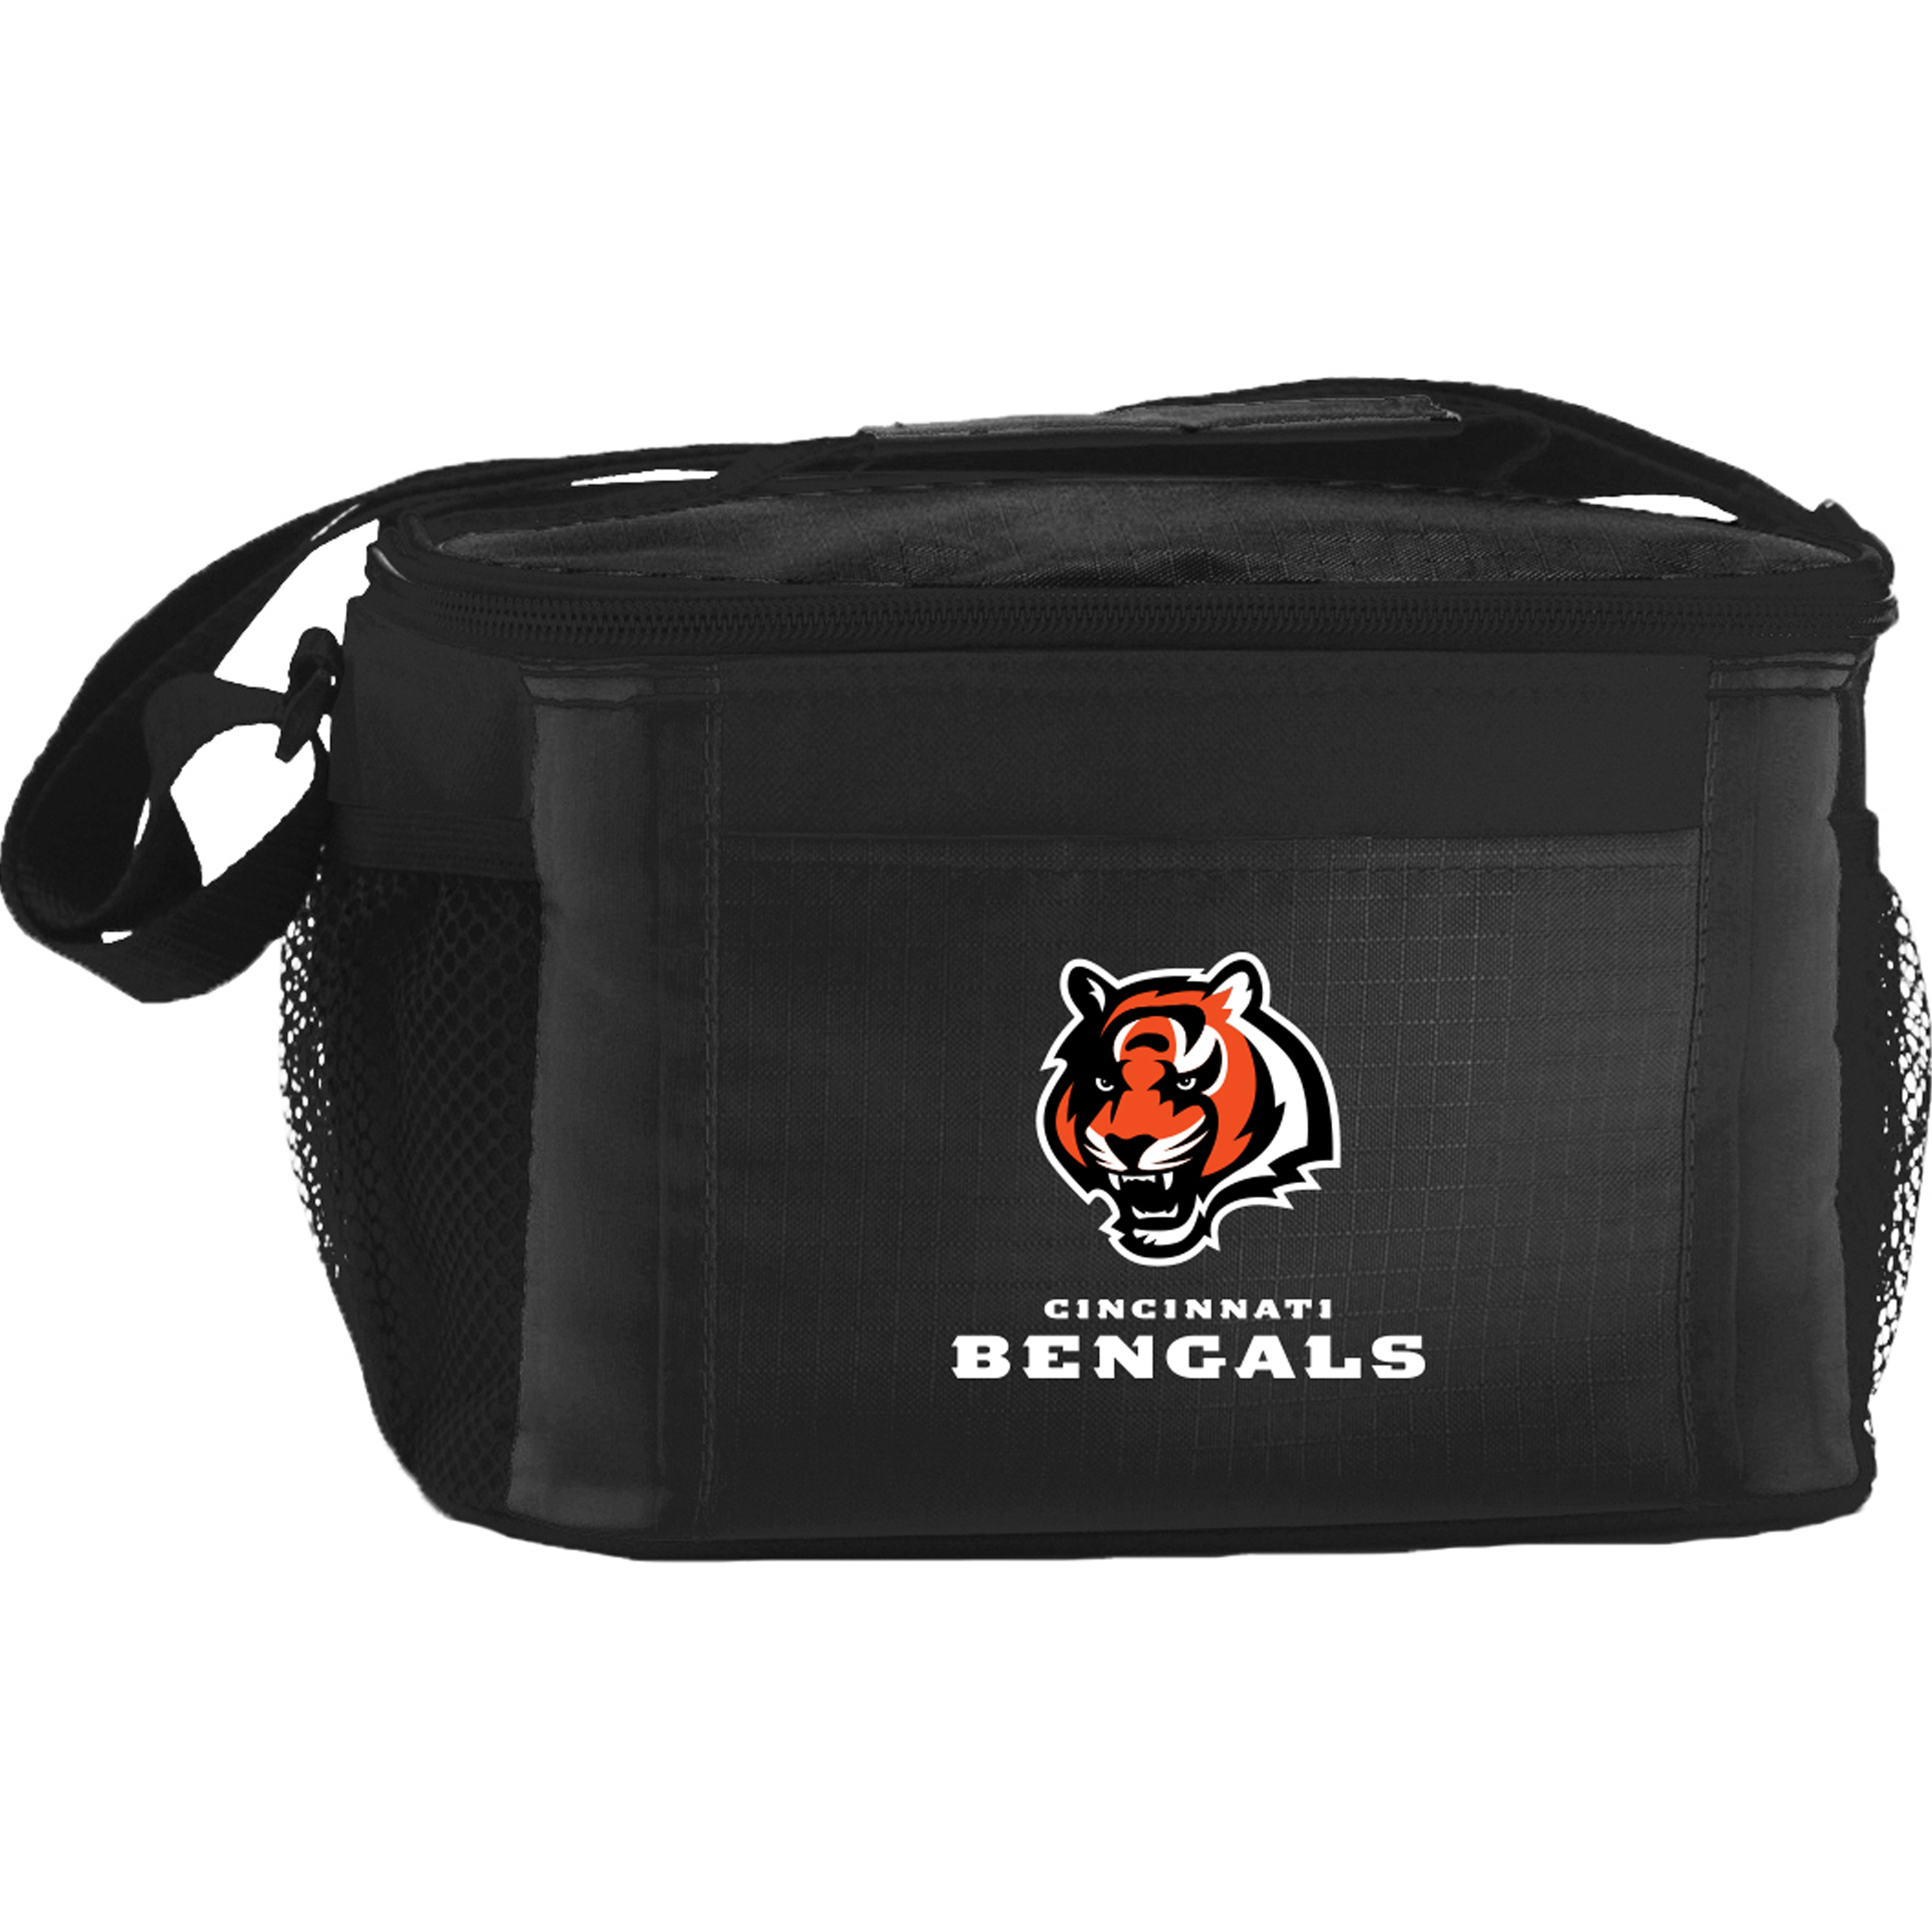 Cincinatti Bengals - 6pk Cooler Bag